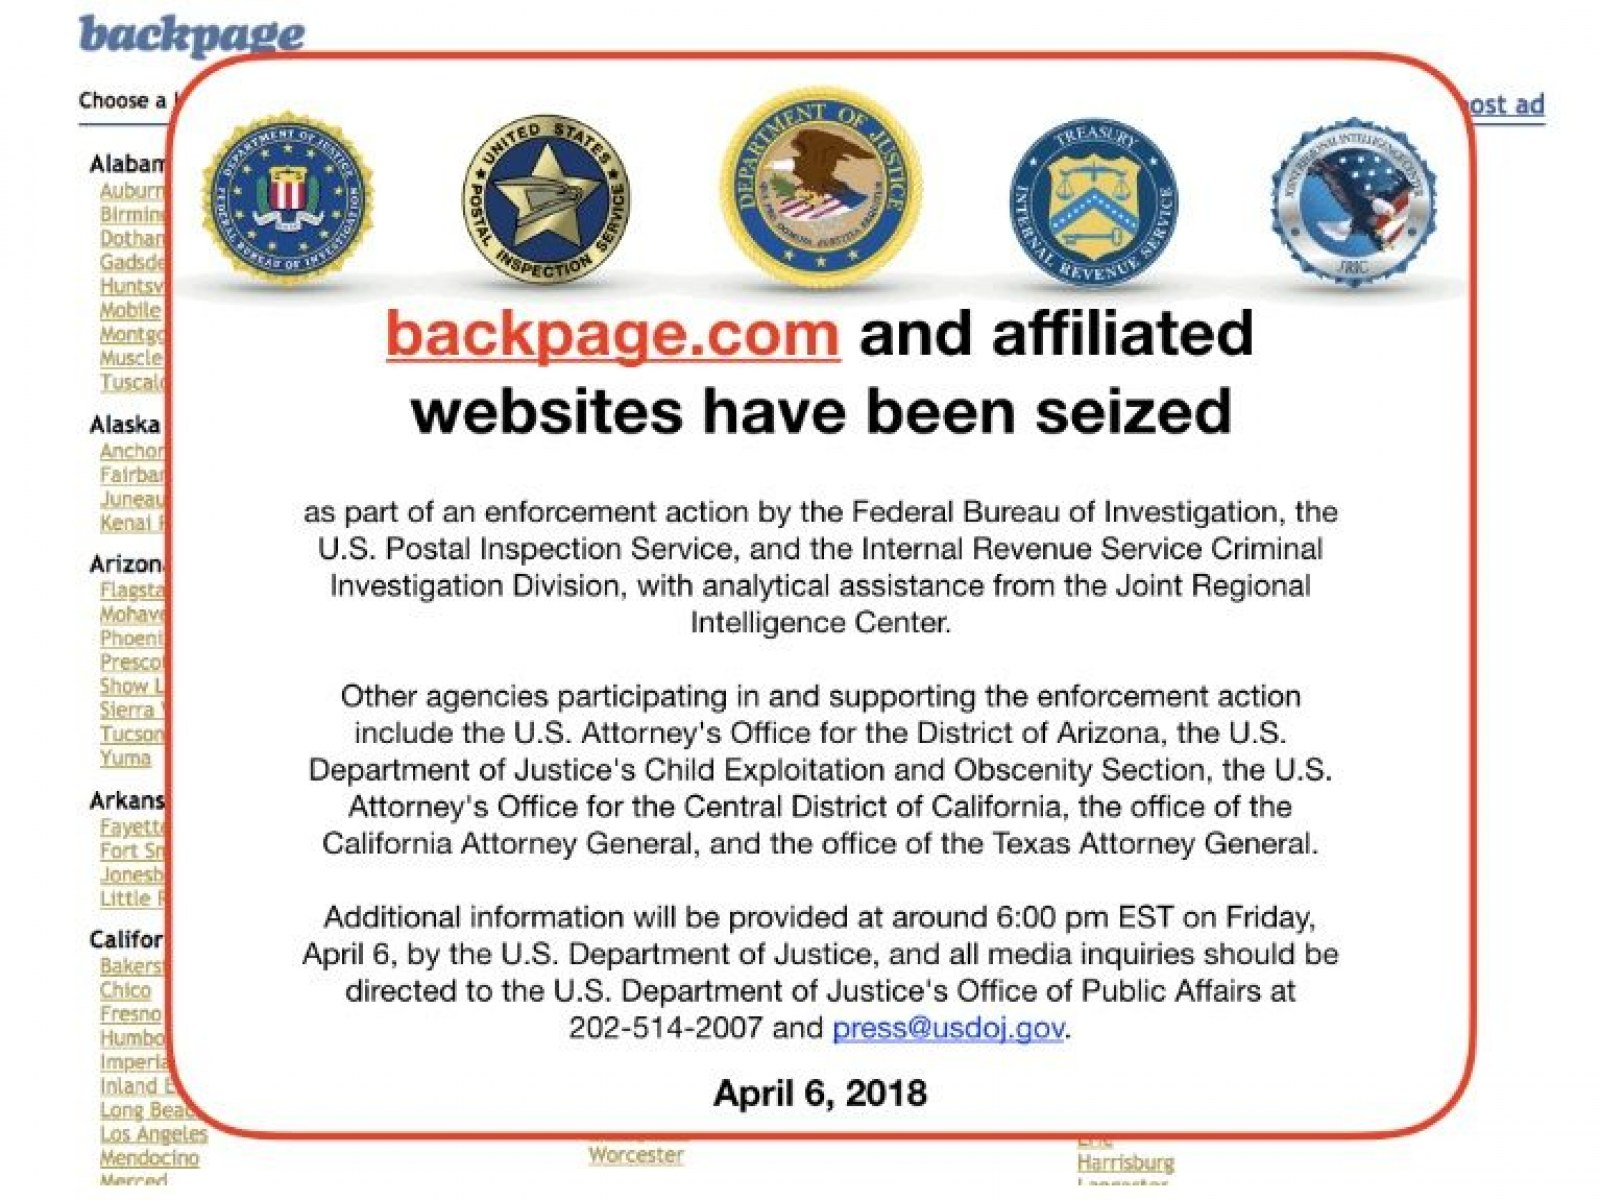 Backpage Website Shut Down, Founder Charged With 93 Counts